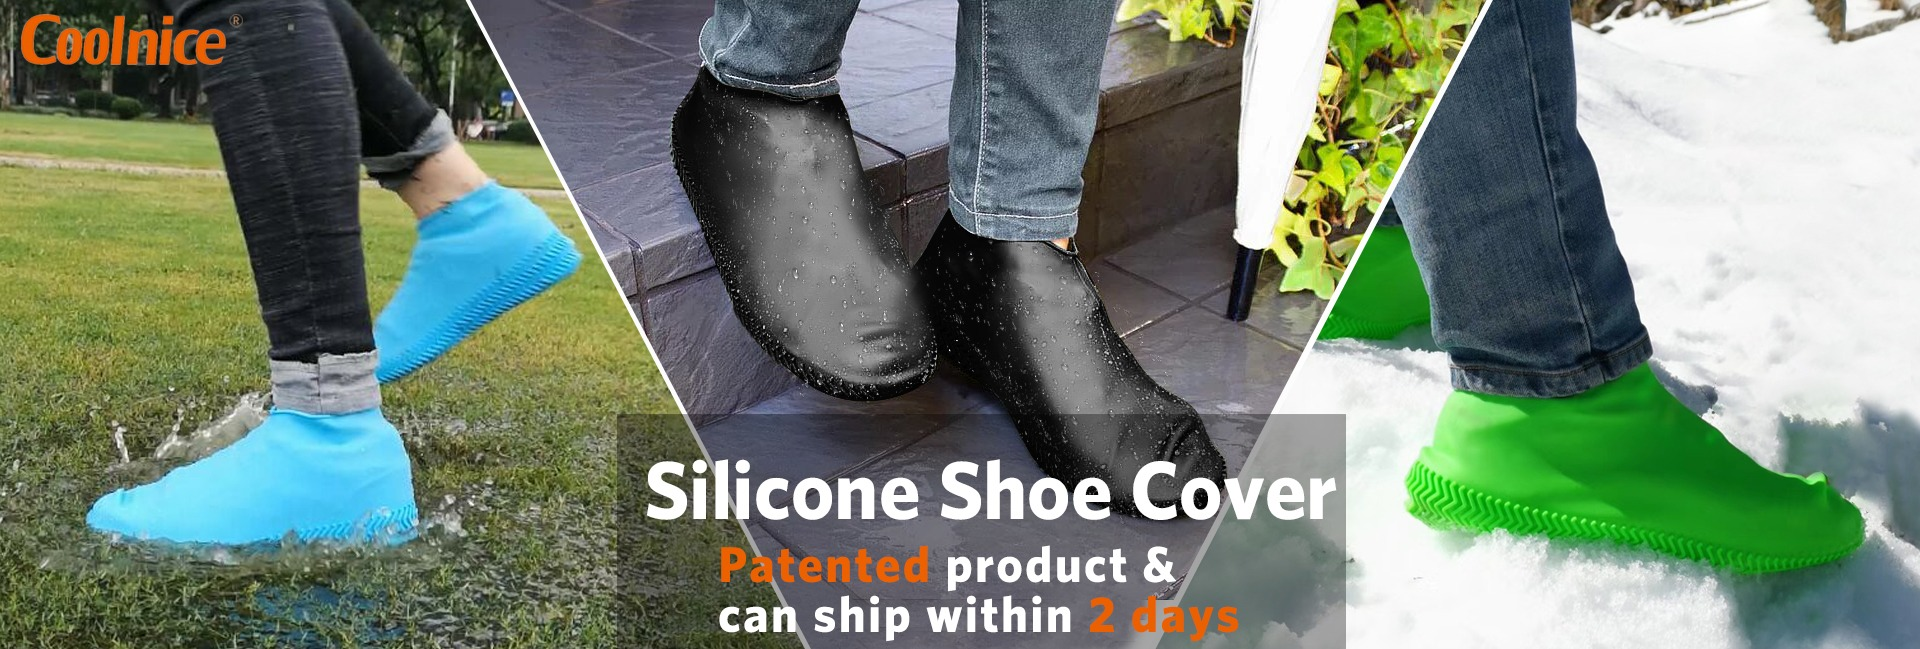 3540b5676a6bd Dongguan Luxing Silicone Products Co., Ltd. - Silicone Shoe Cover ...